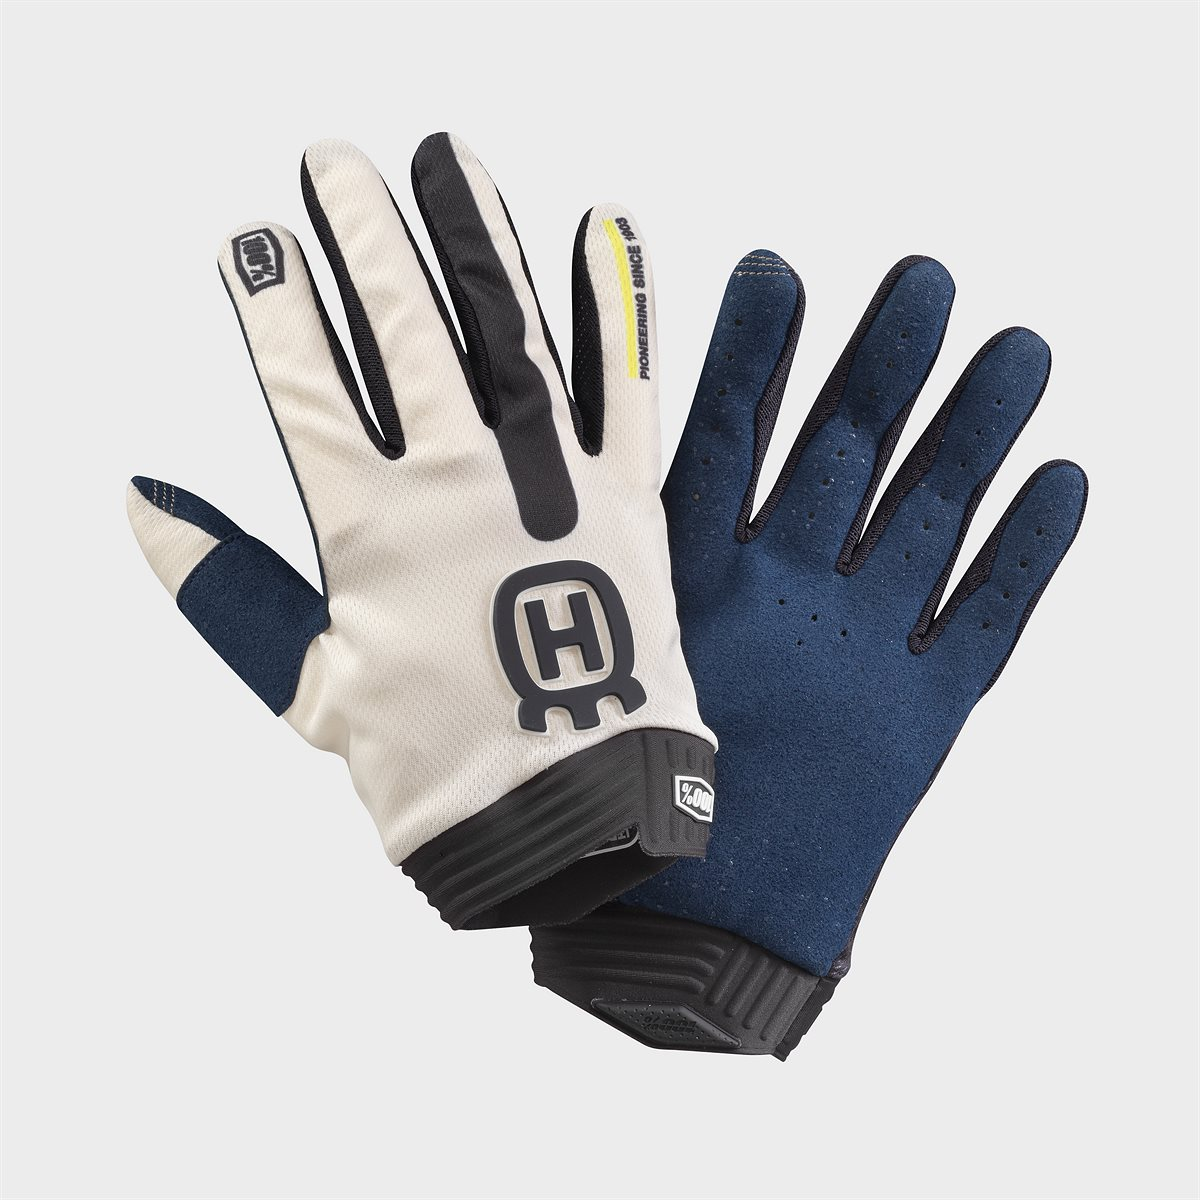 iTrack Origin Gloves (2)